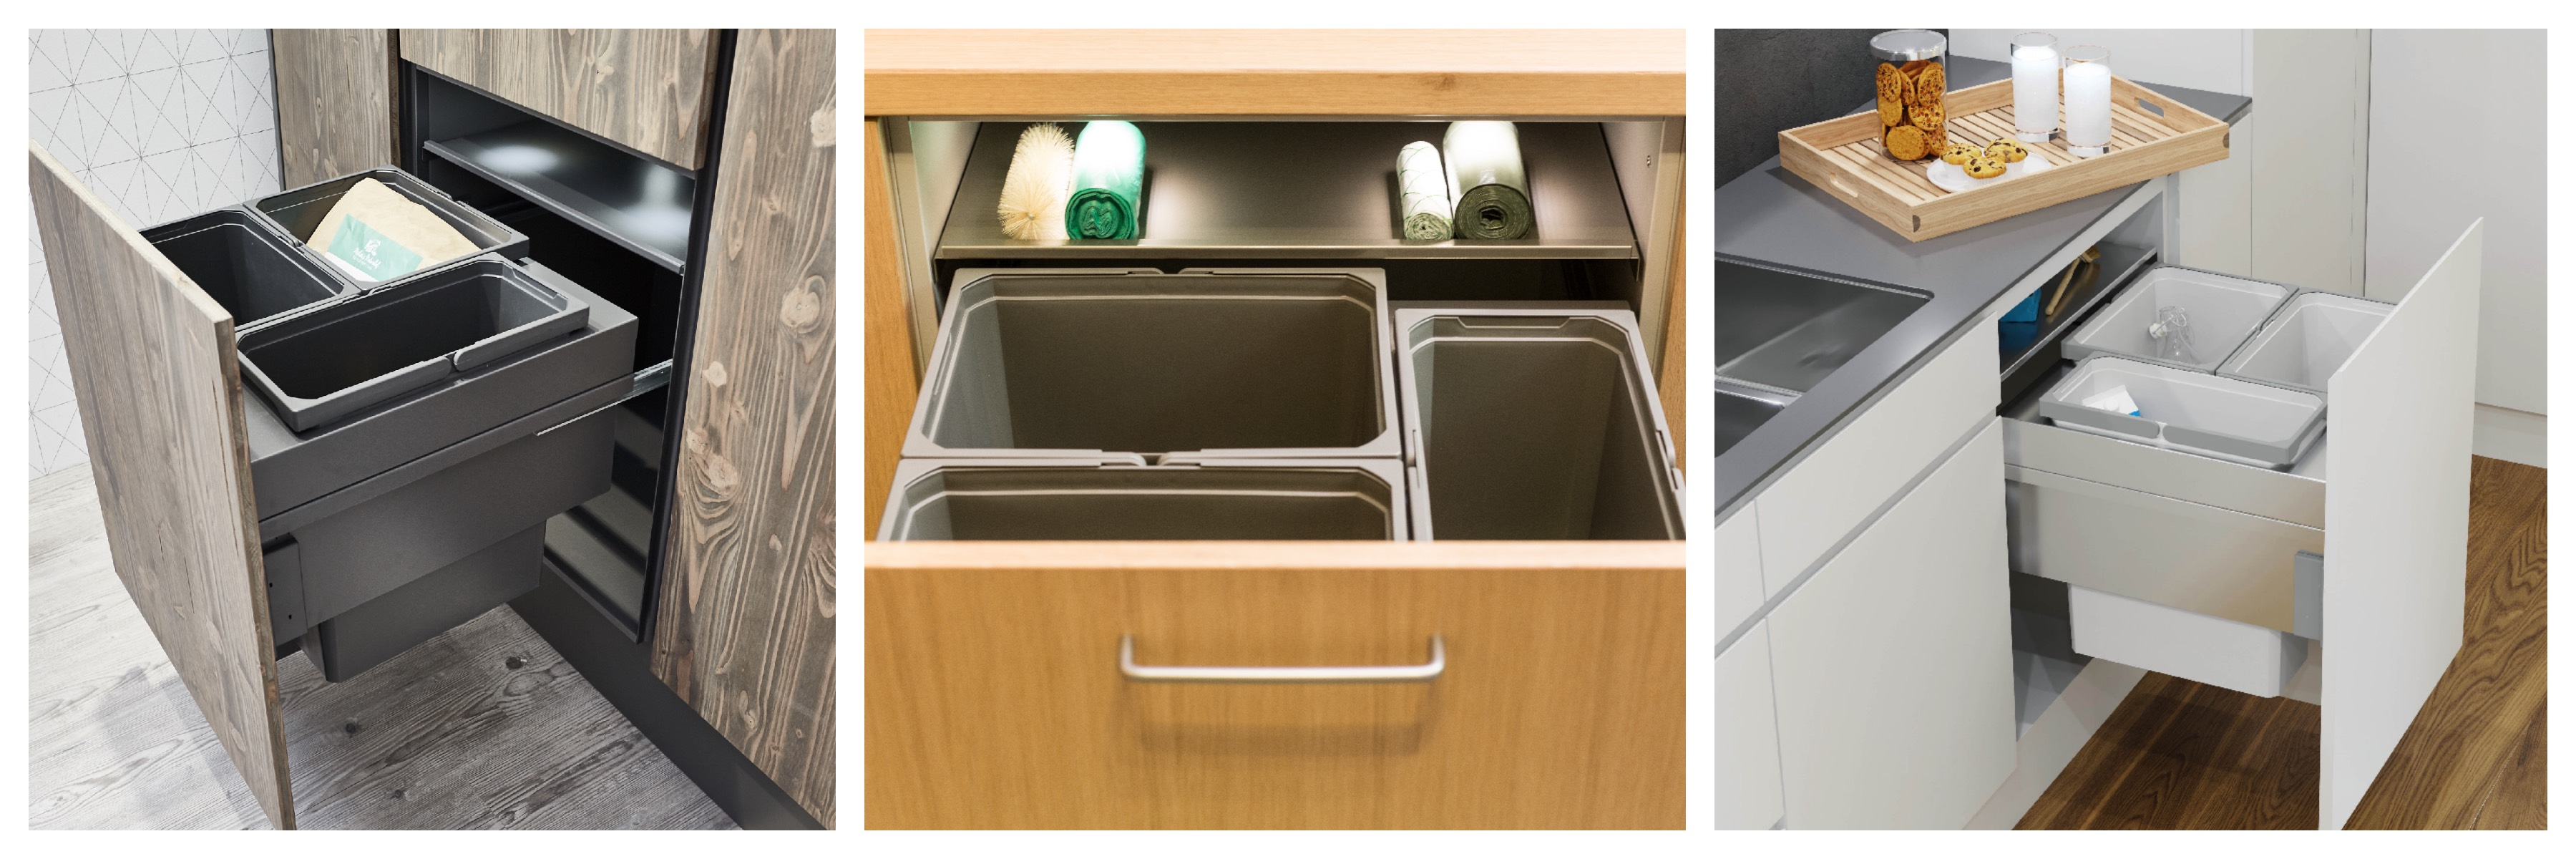 Vauth-Sagel in-cupboard bins: new extended range in stock